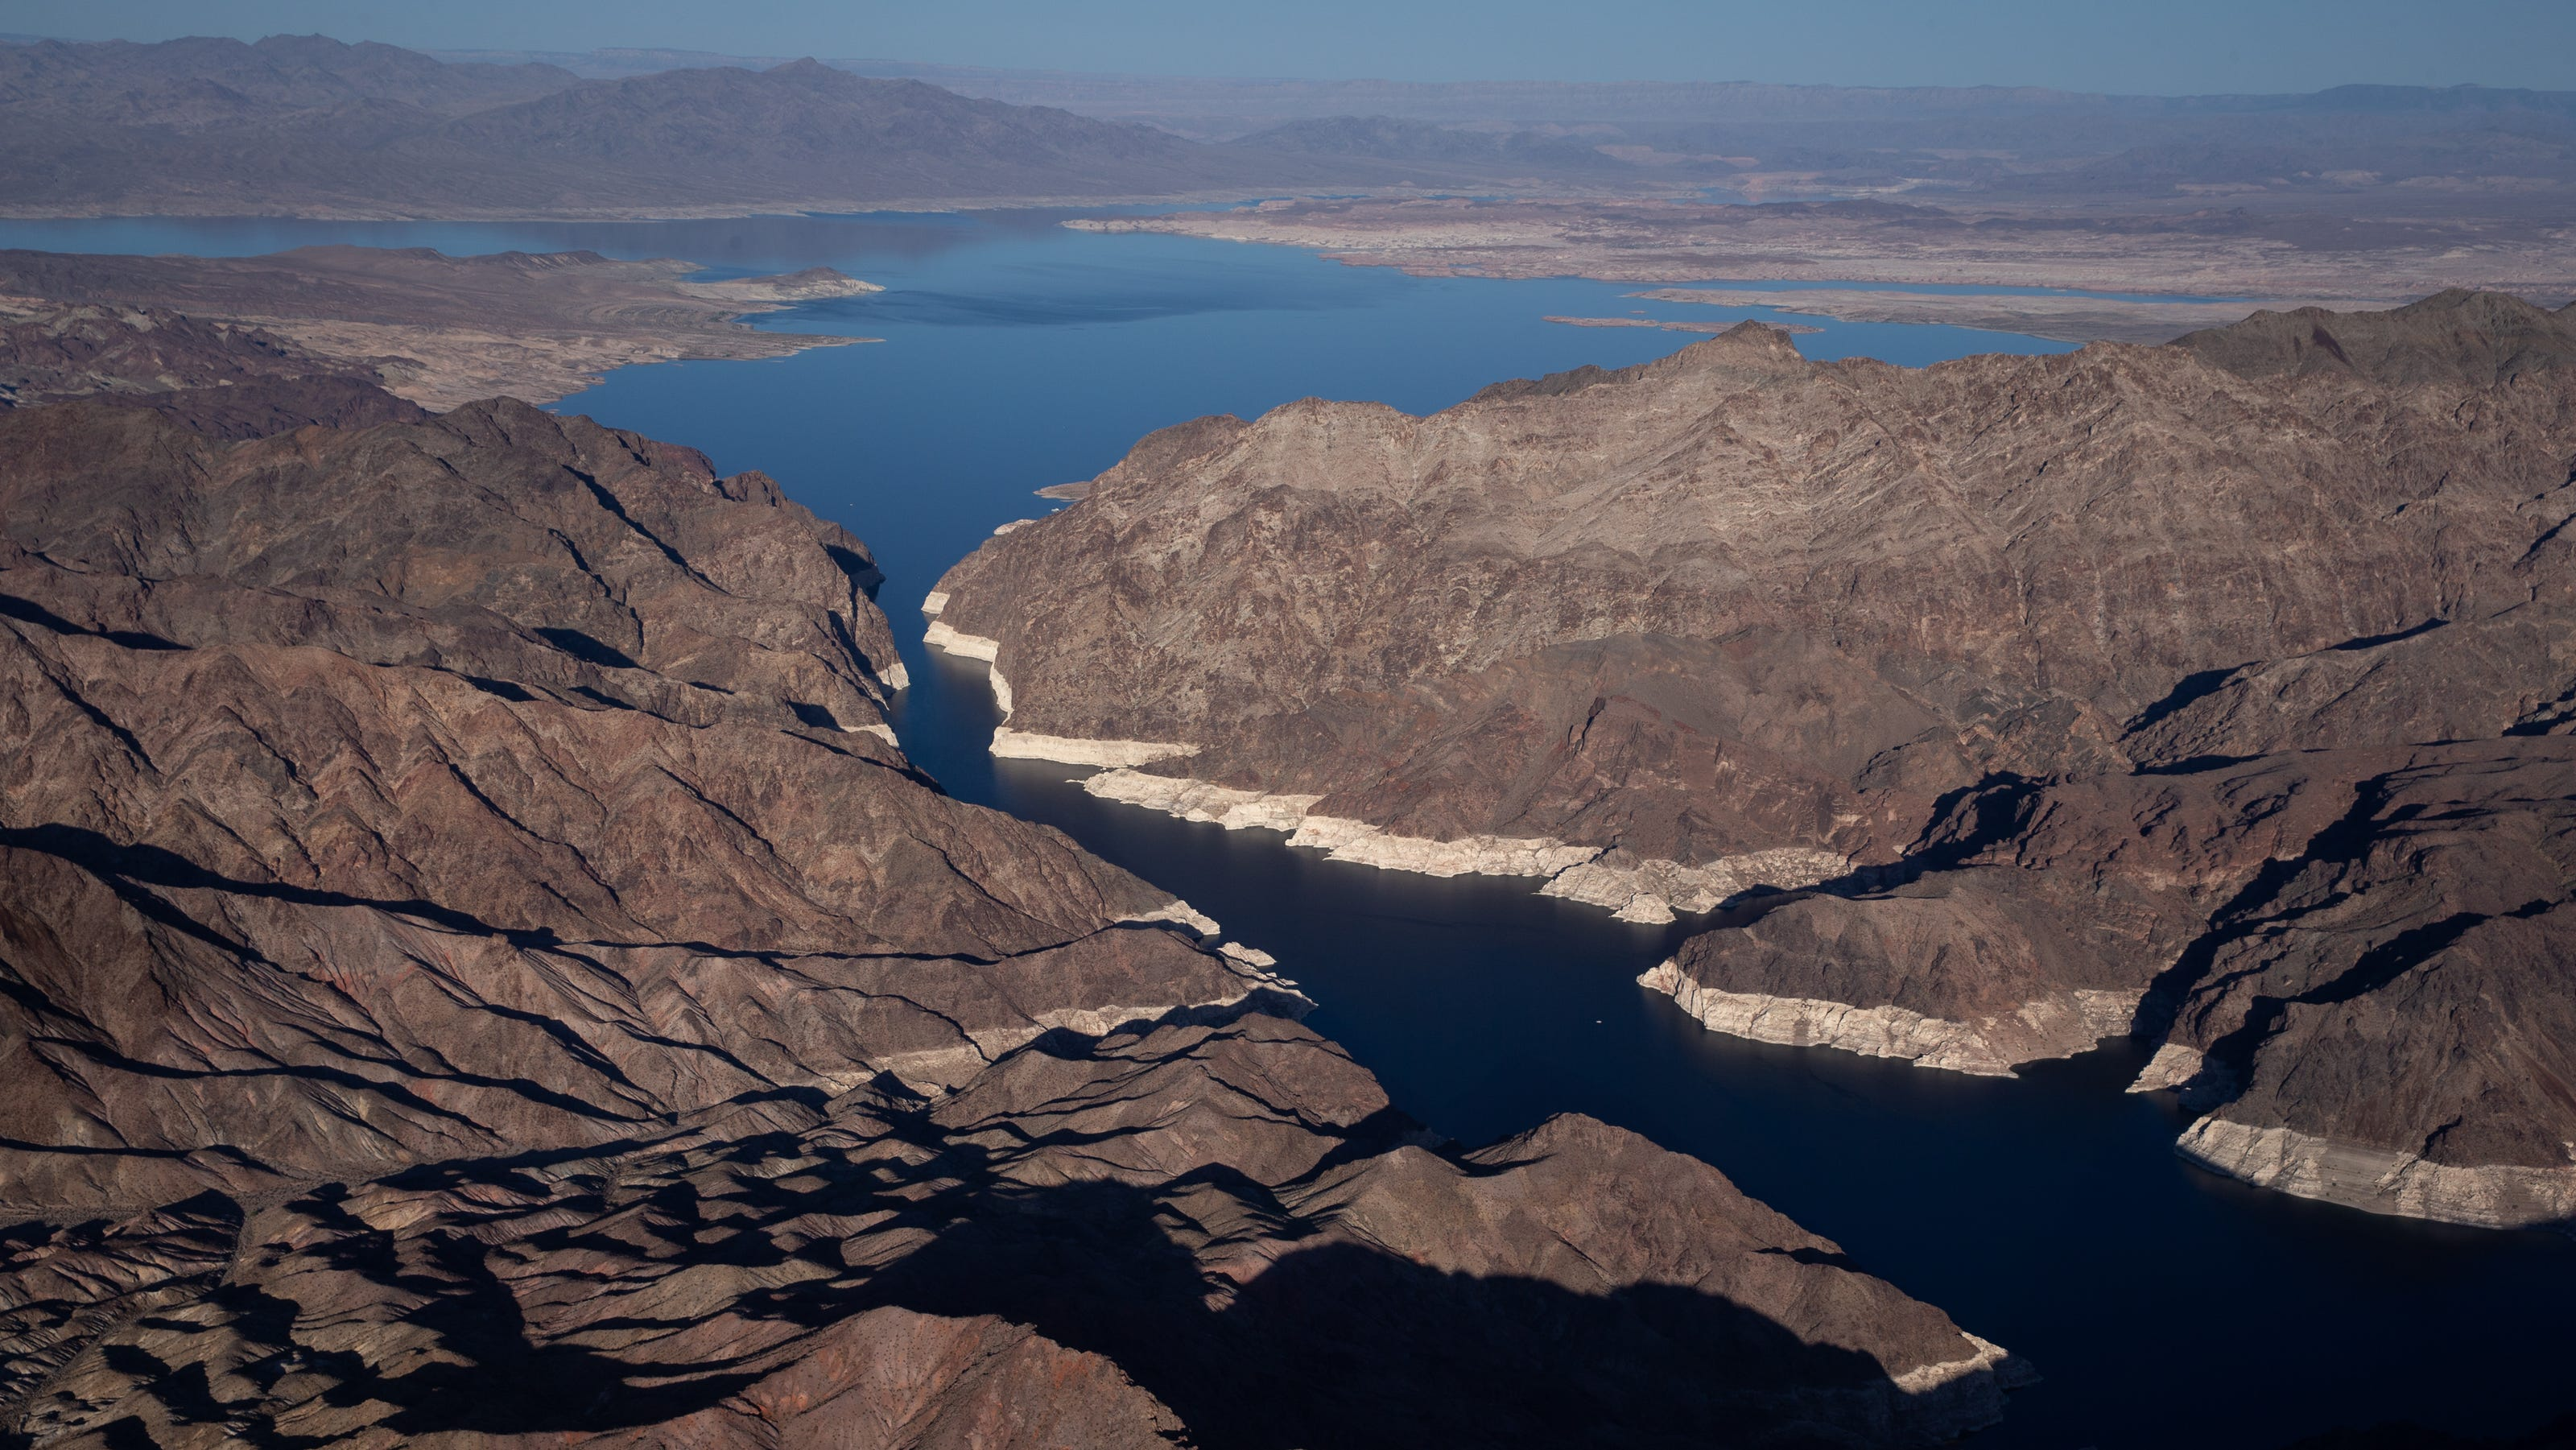 The federal government on Monday declared the first water shortage on the Colorado River, announcing mandatorycutbacks next year that will bring maj